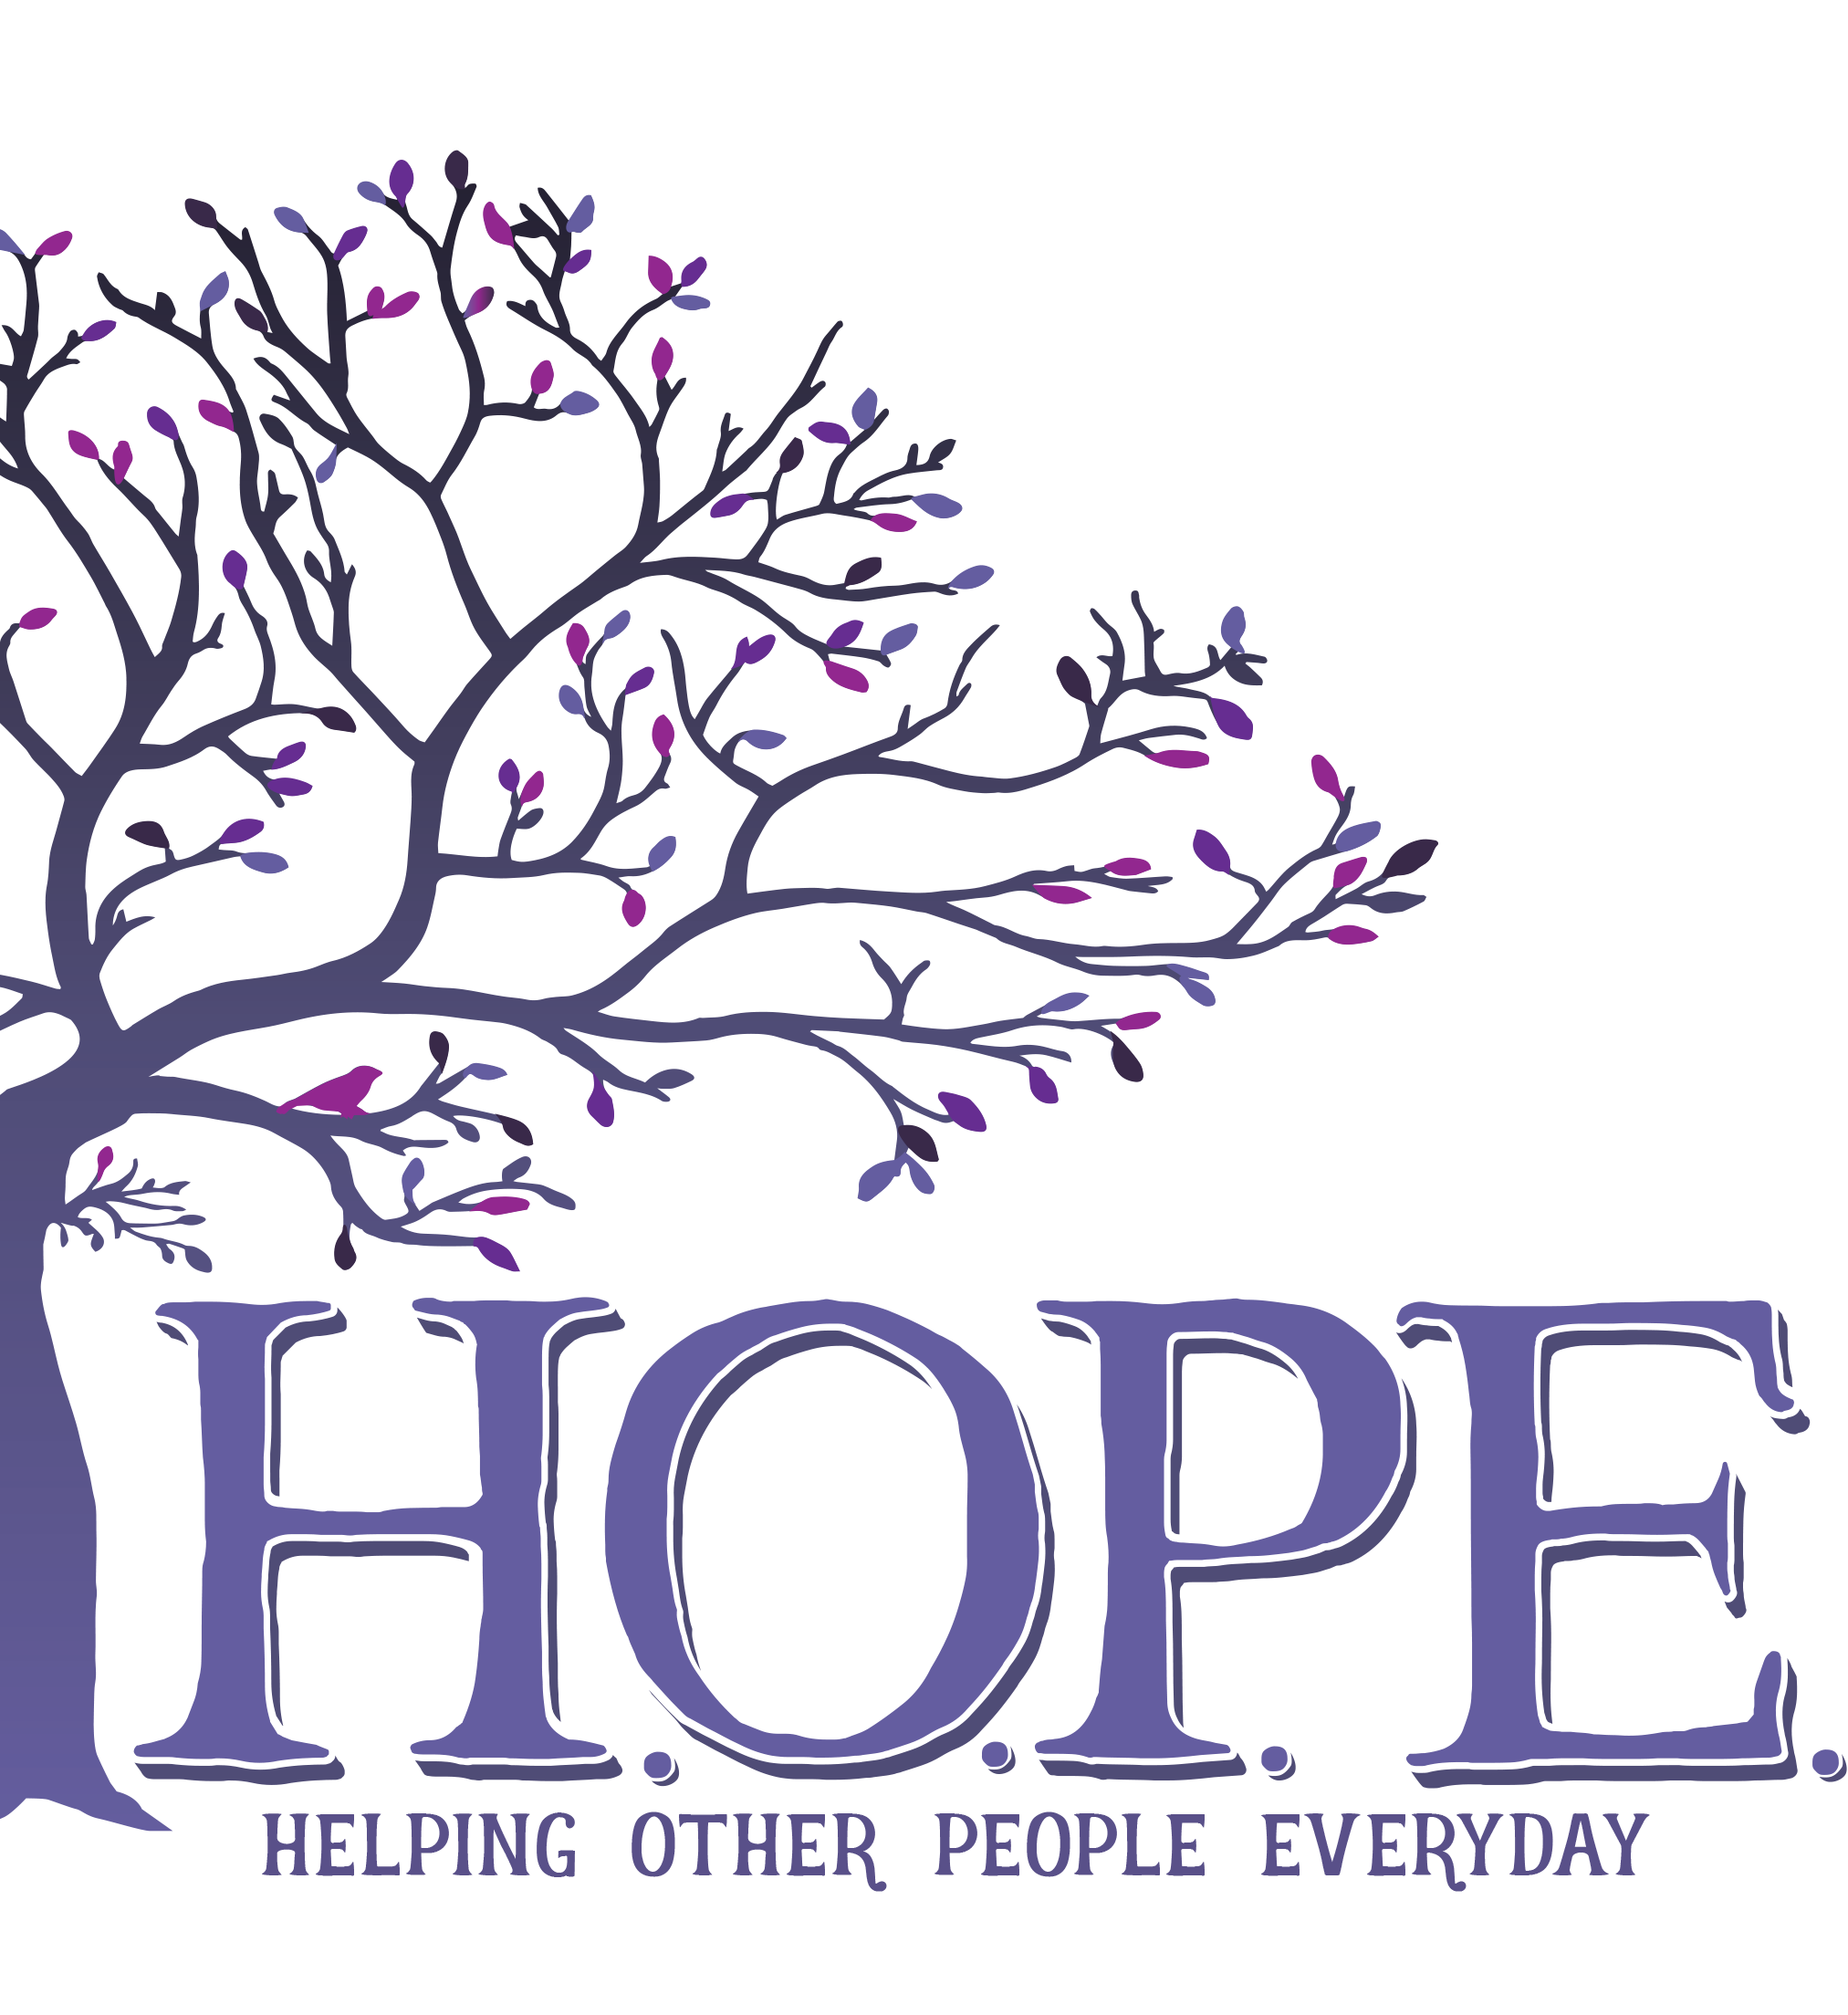 Hope - helping other people everyday